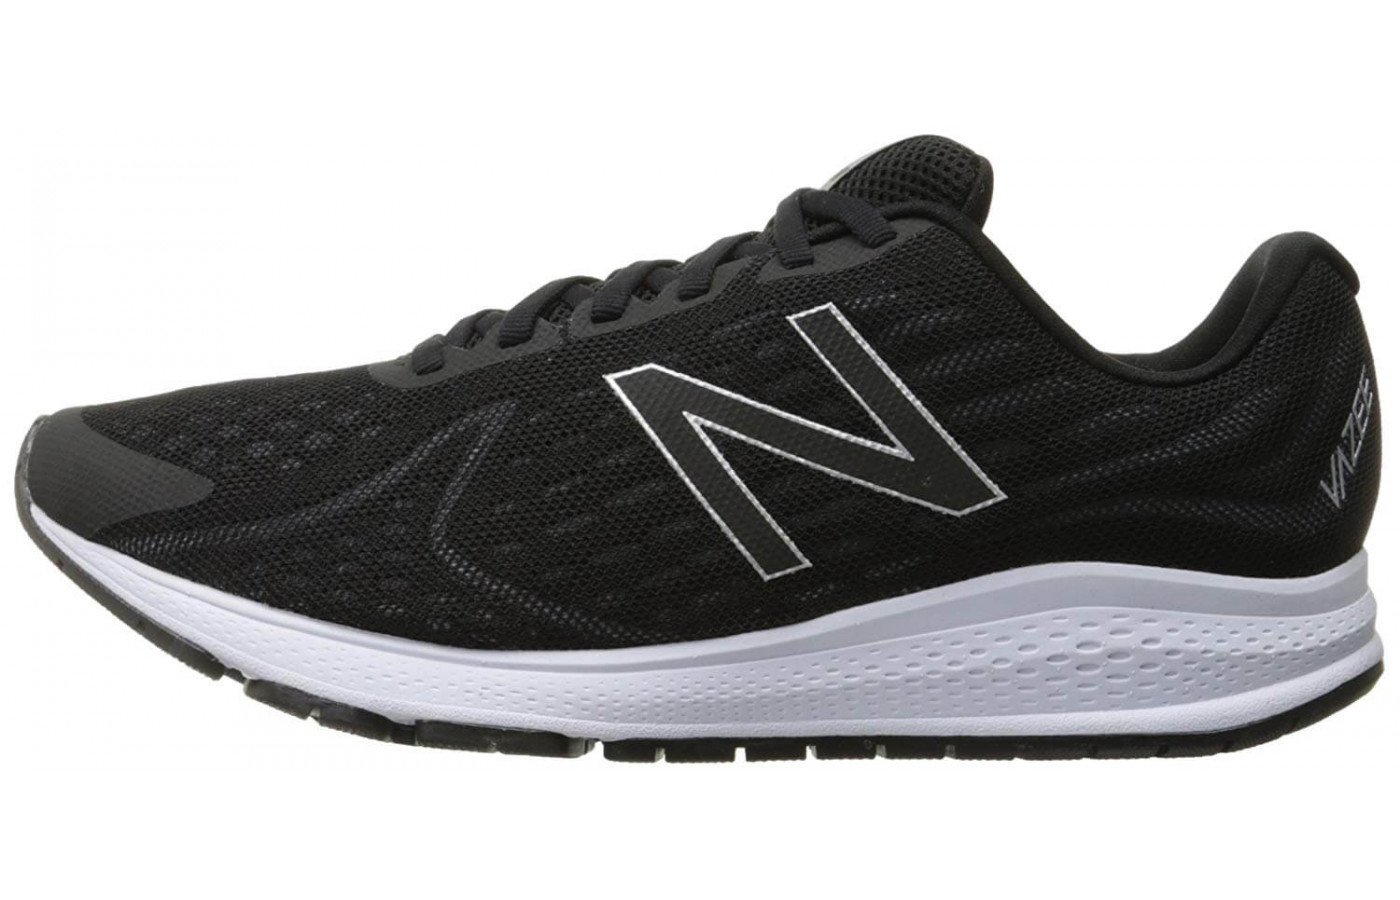 The medial side of the New Balance Vazee Rush v2.